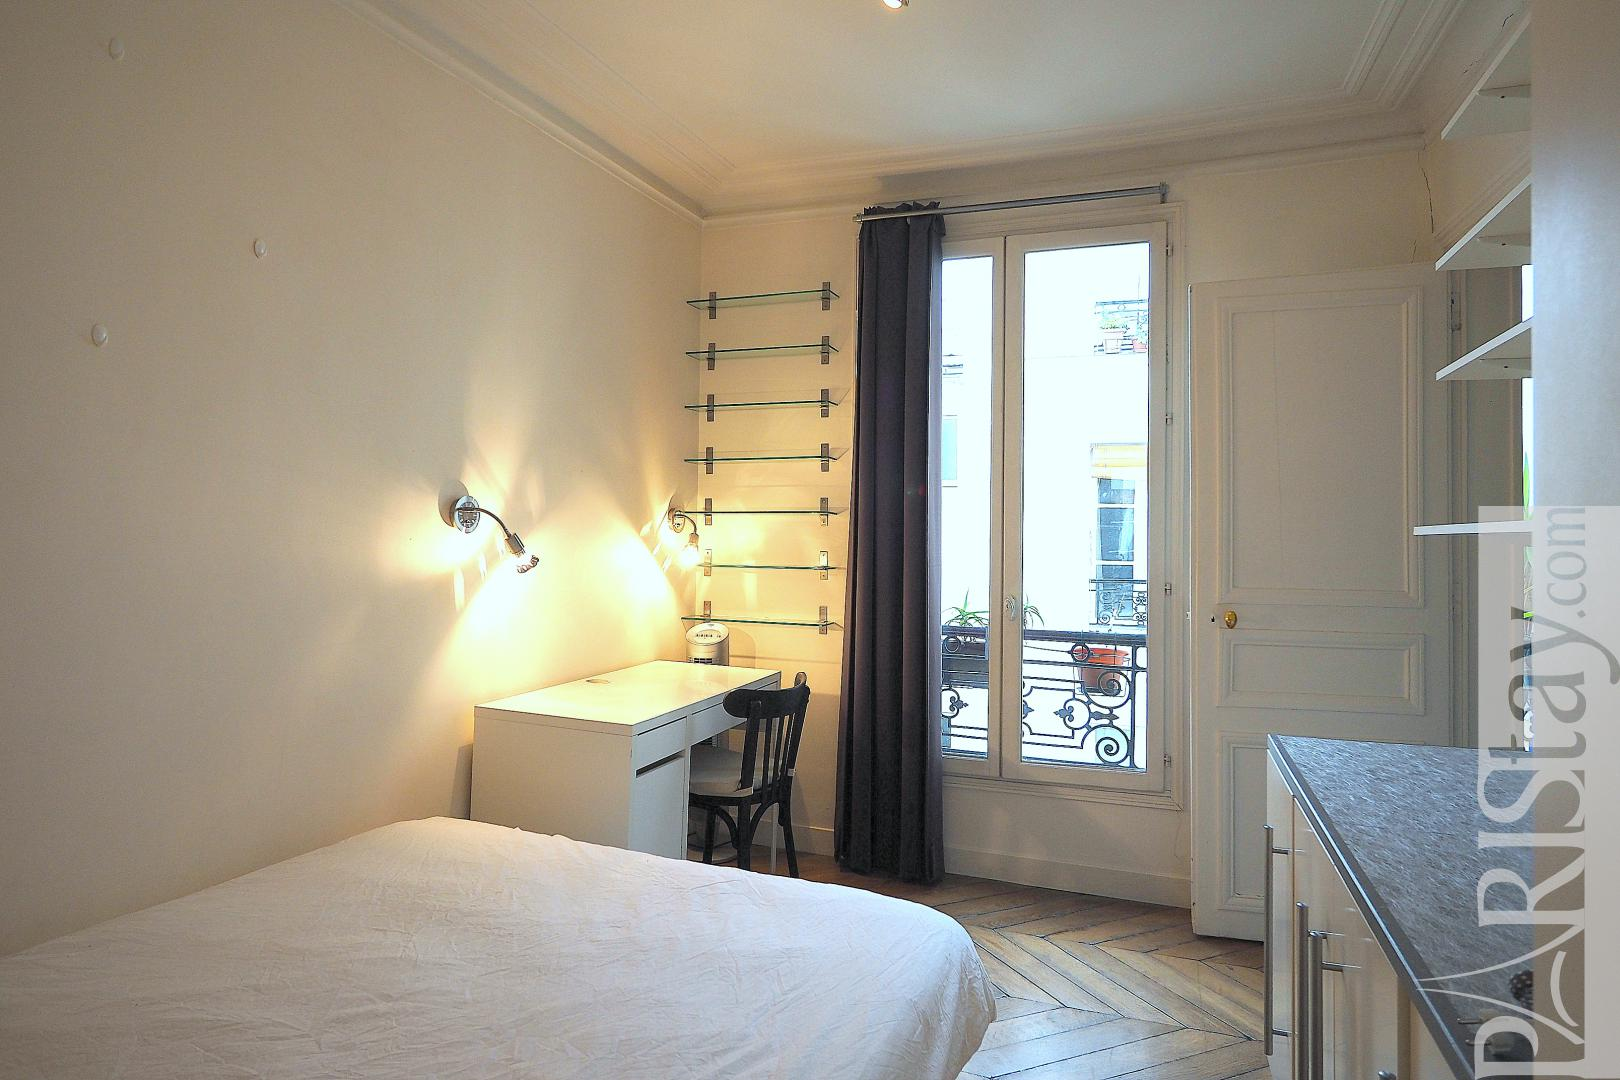 Appartement meuble a louer a paris t2 montorgueil for Appartement meuble louer paris